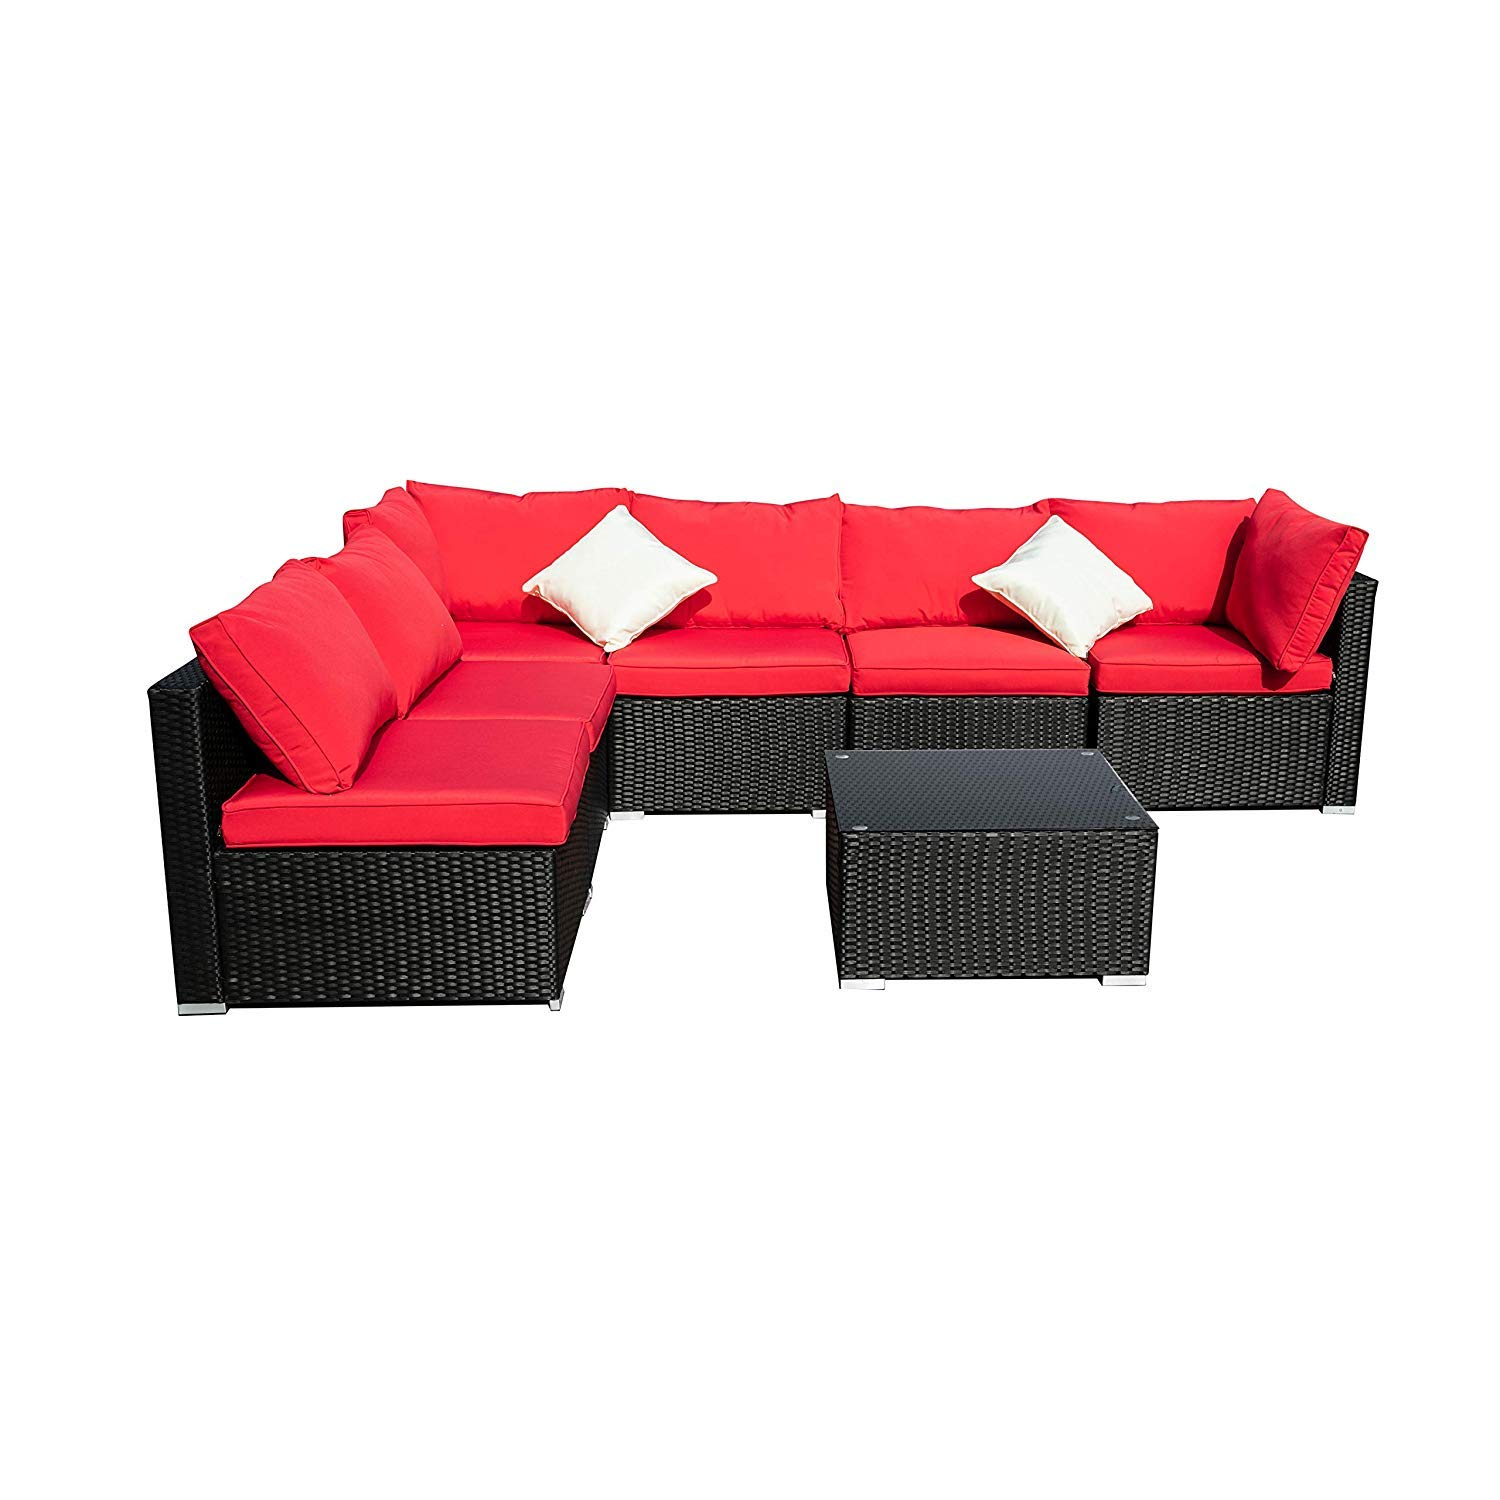 DOIT Outdoor Rattan Patio Garden Sofa,Wicker Patio Sectional Furniture Sofa Outside,Party Sofa Conversation Set with Cushions and Glass Coffee Table 7 Pcs Wicker Sofa Sets Red